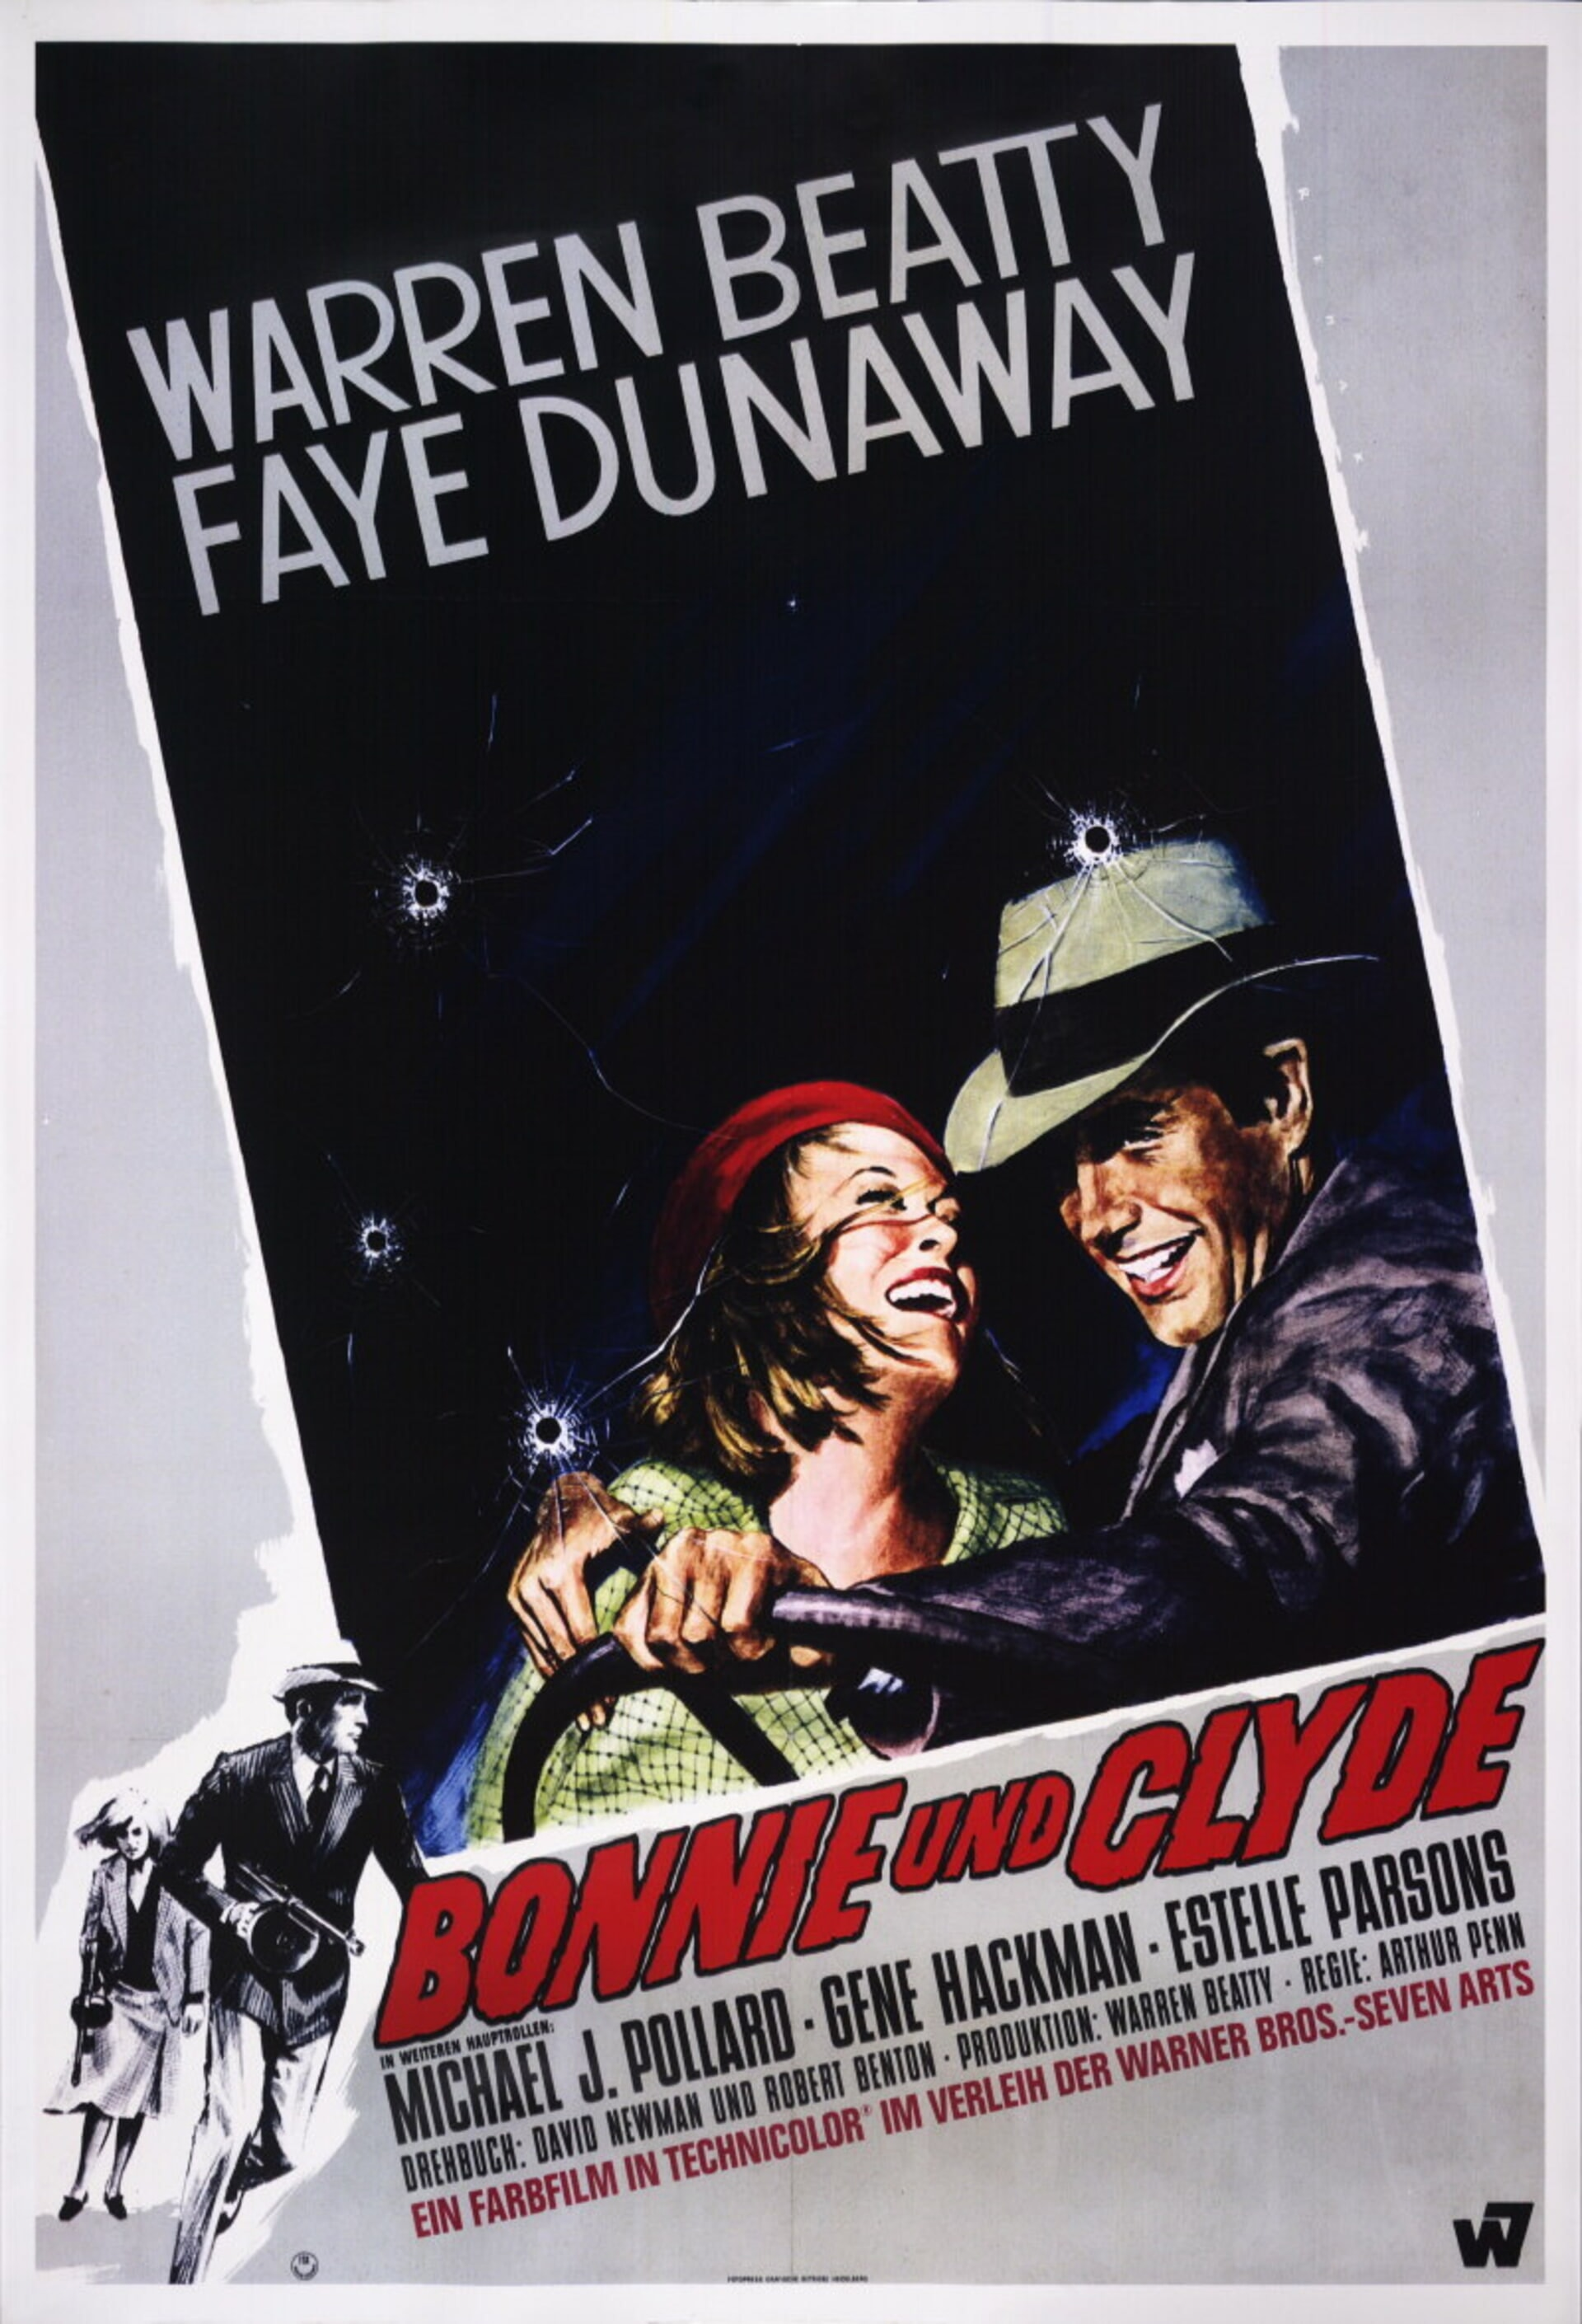 Bonnie and Clyde - Poster 1